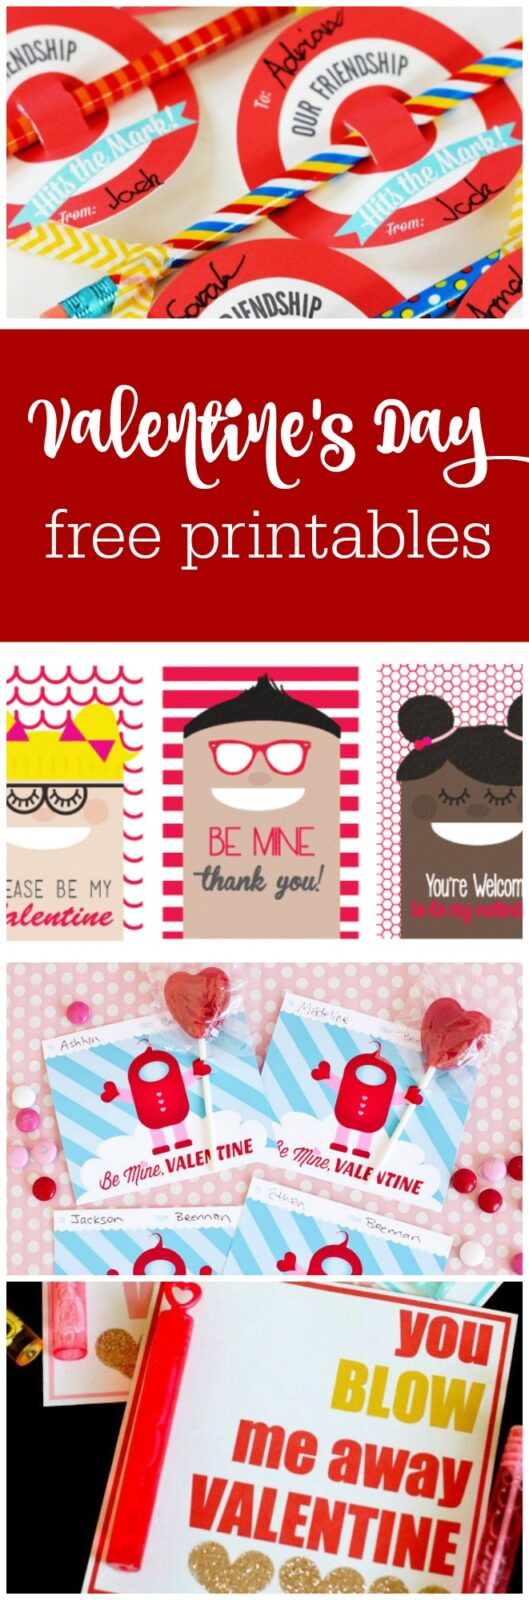 Valentine's Day free printables curated by The Party Teacher